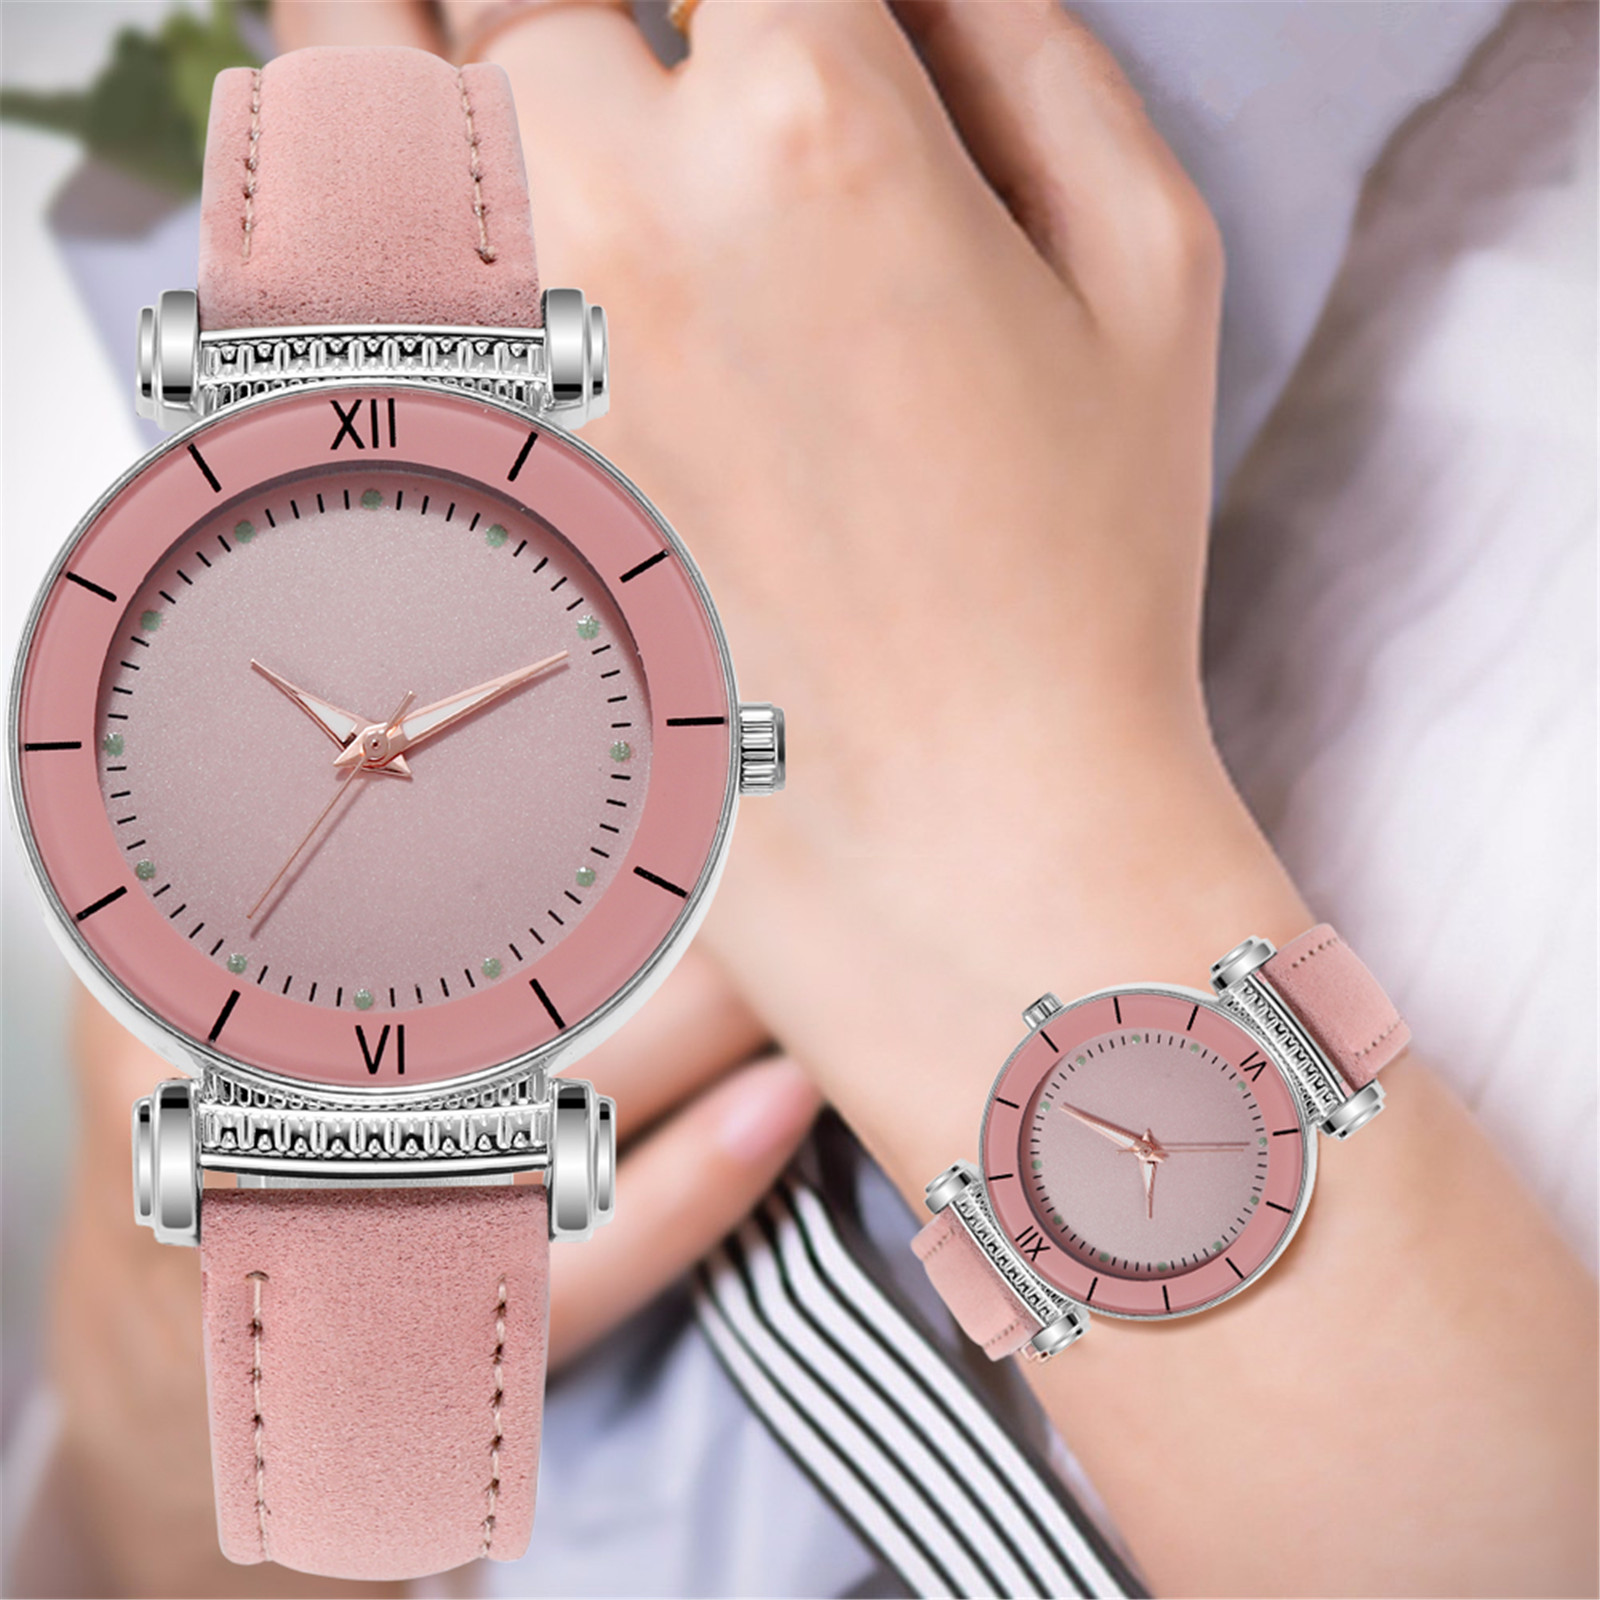 Luxury Watches Quartz Watches Stainless Steel Dial Casual Bracele Watch High-end Bracelet For Women'